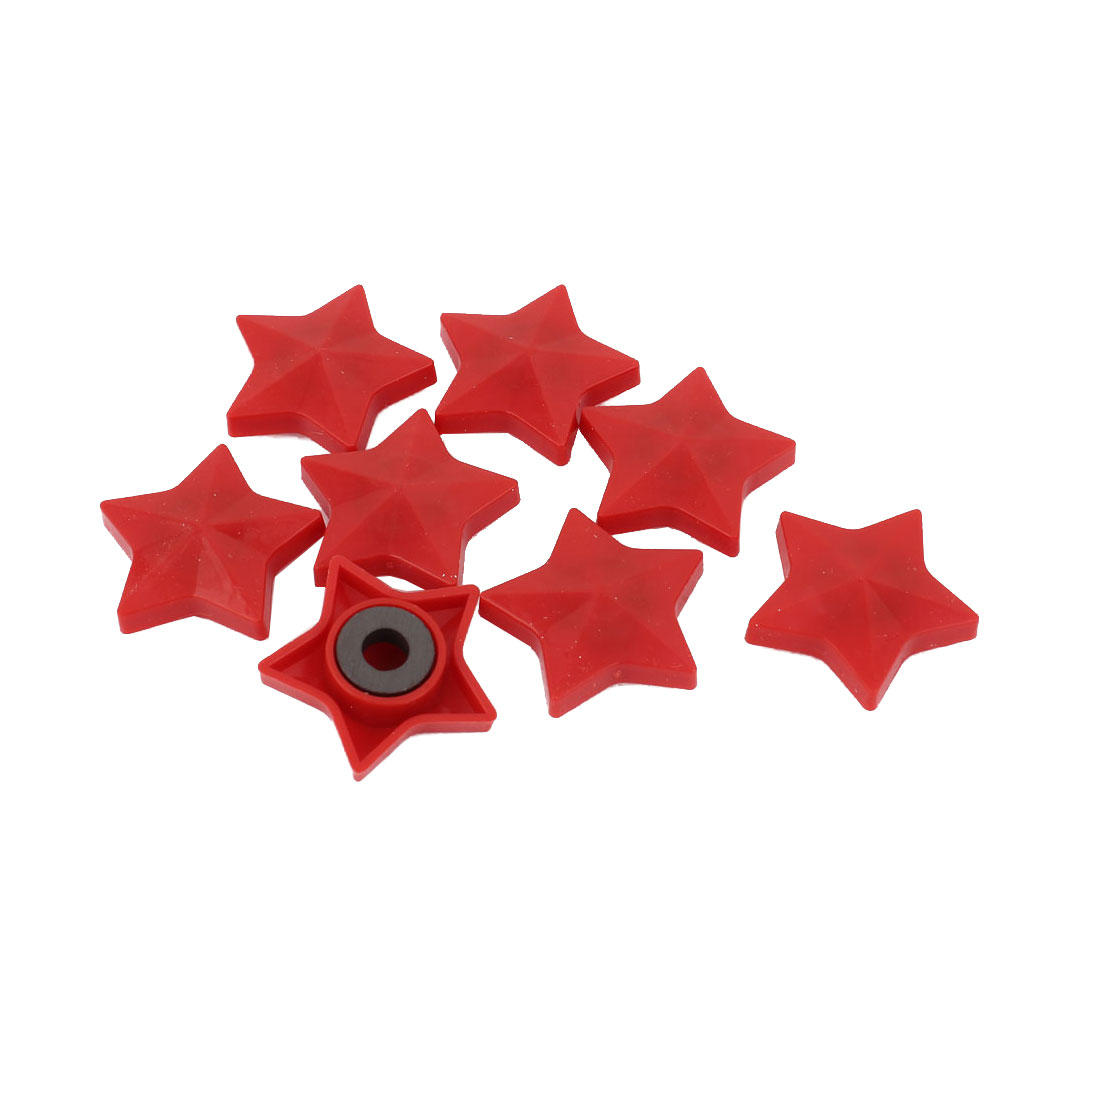 8 Pcs Red Plastic Shell Pentacle Shape Whiteboard Fridge Magnetic Sticker